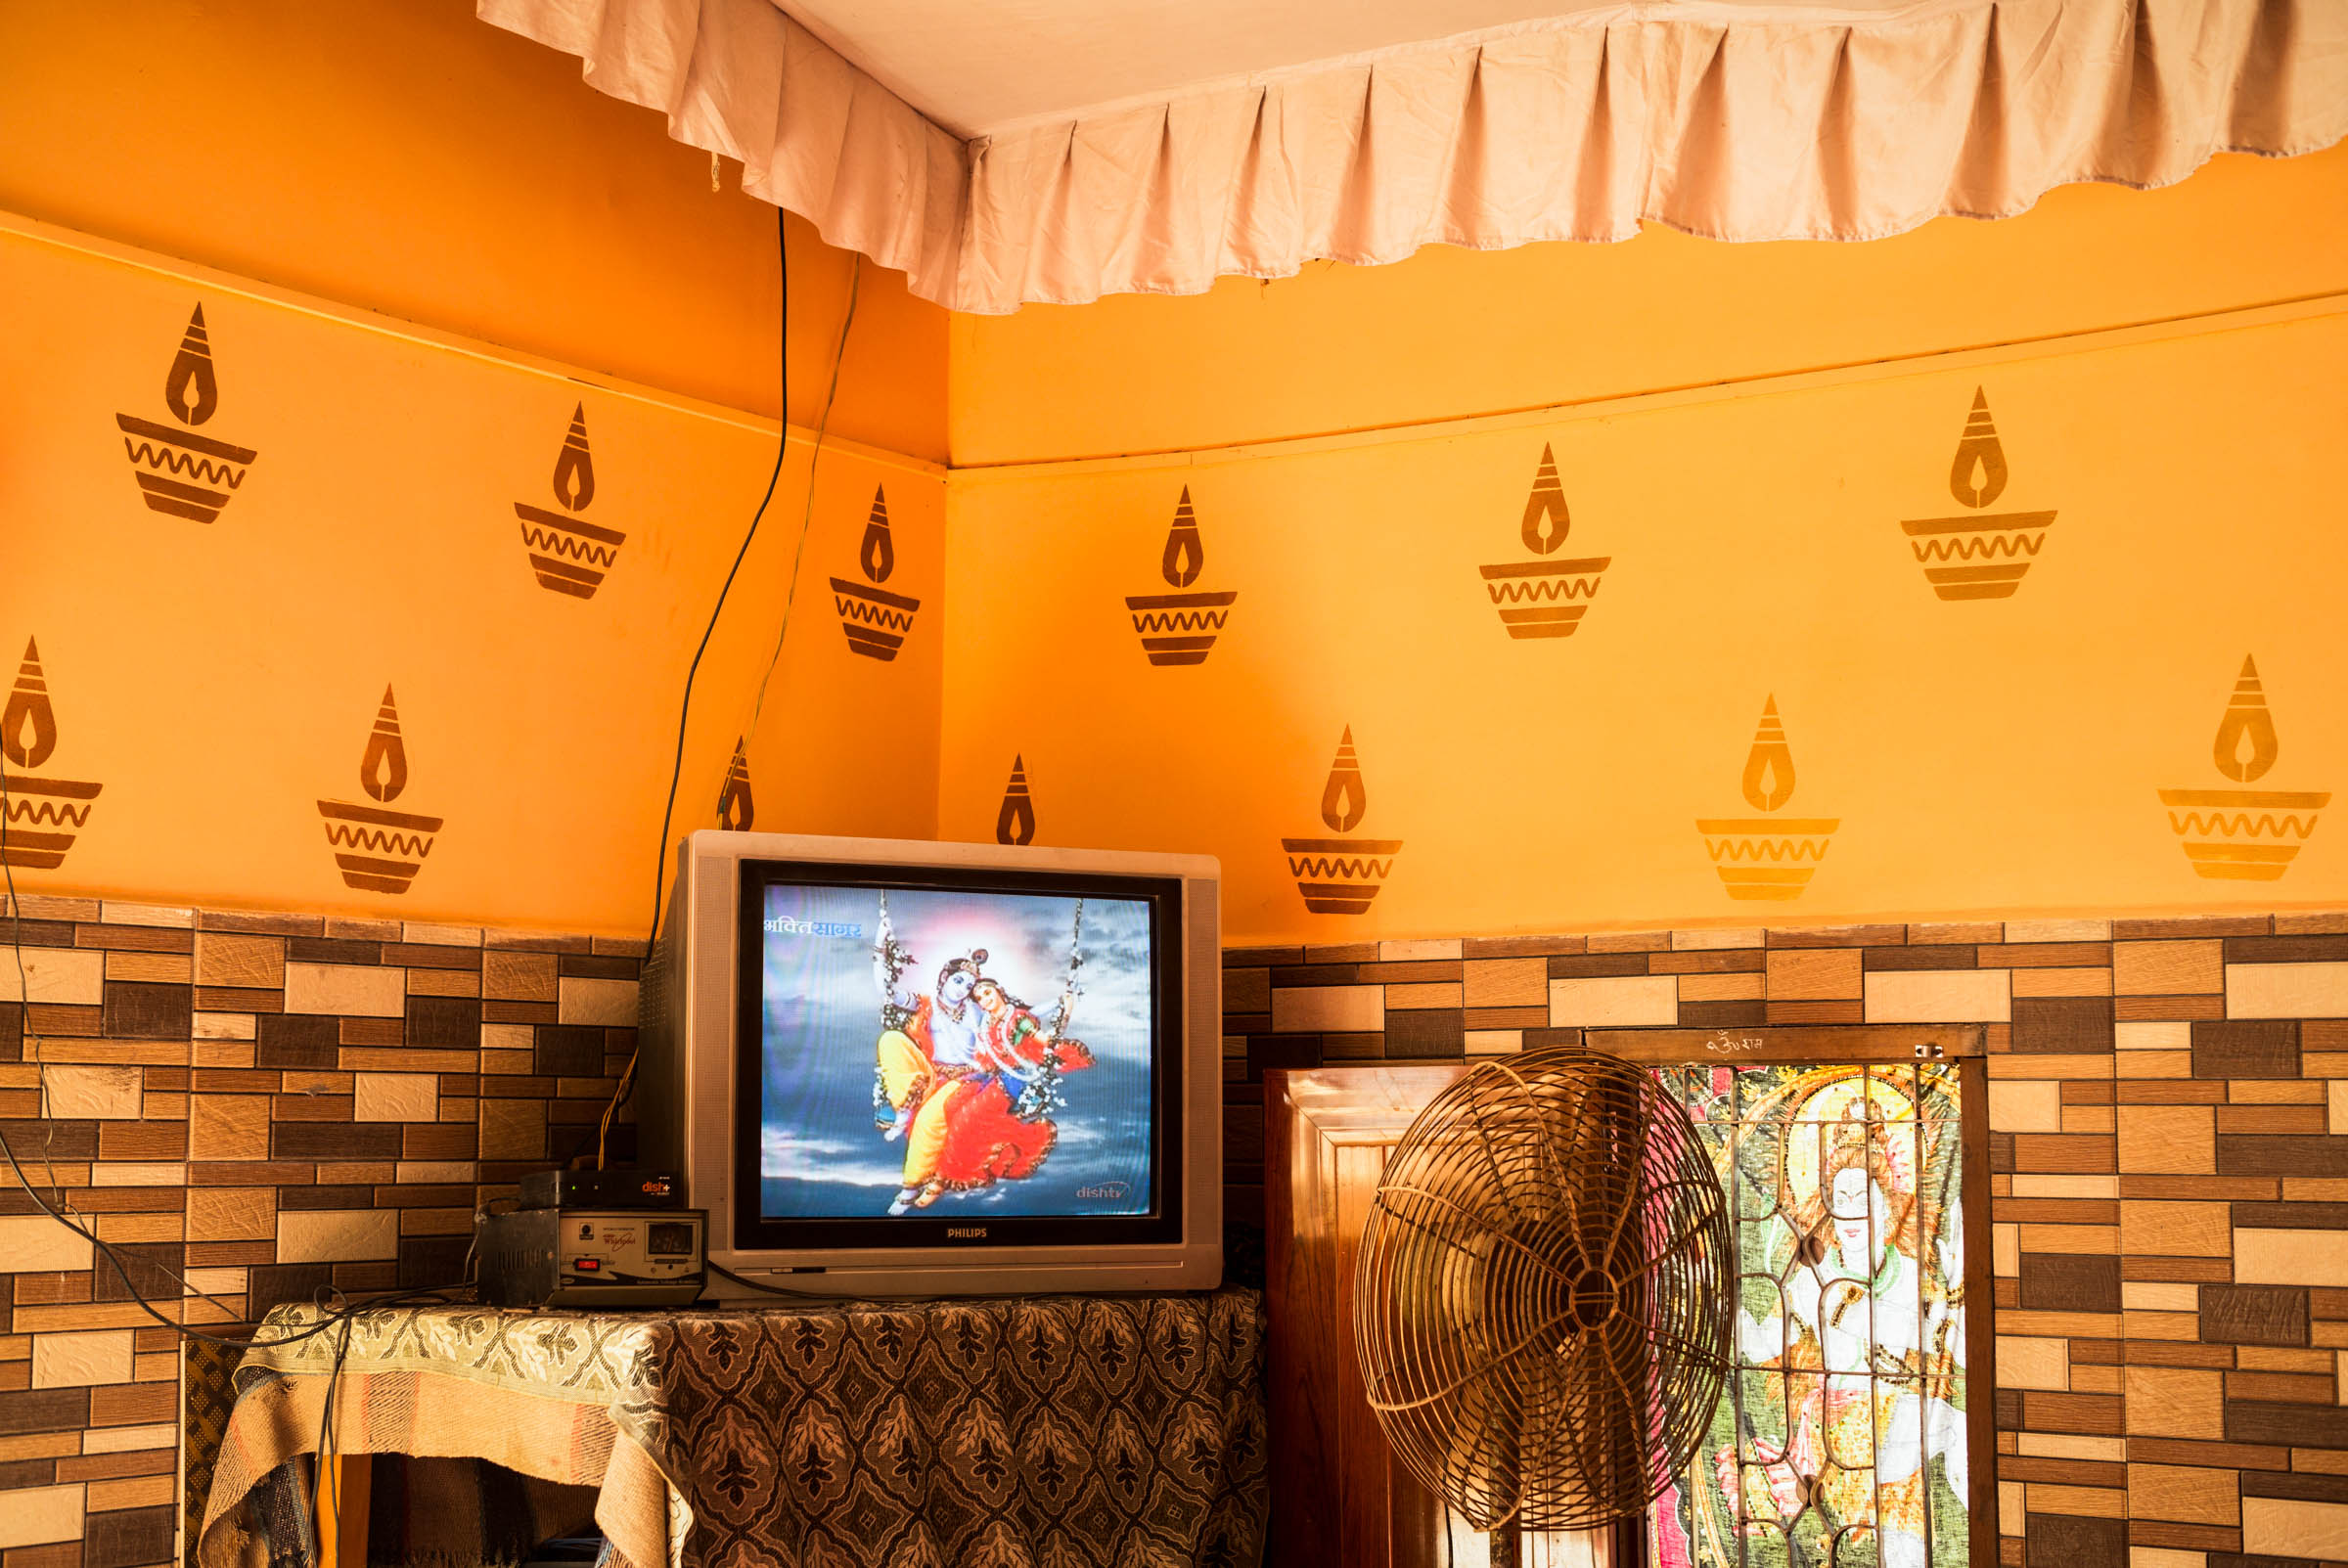 Radha and Krishna on Television, Neelkanth, India, 2016.